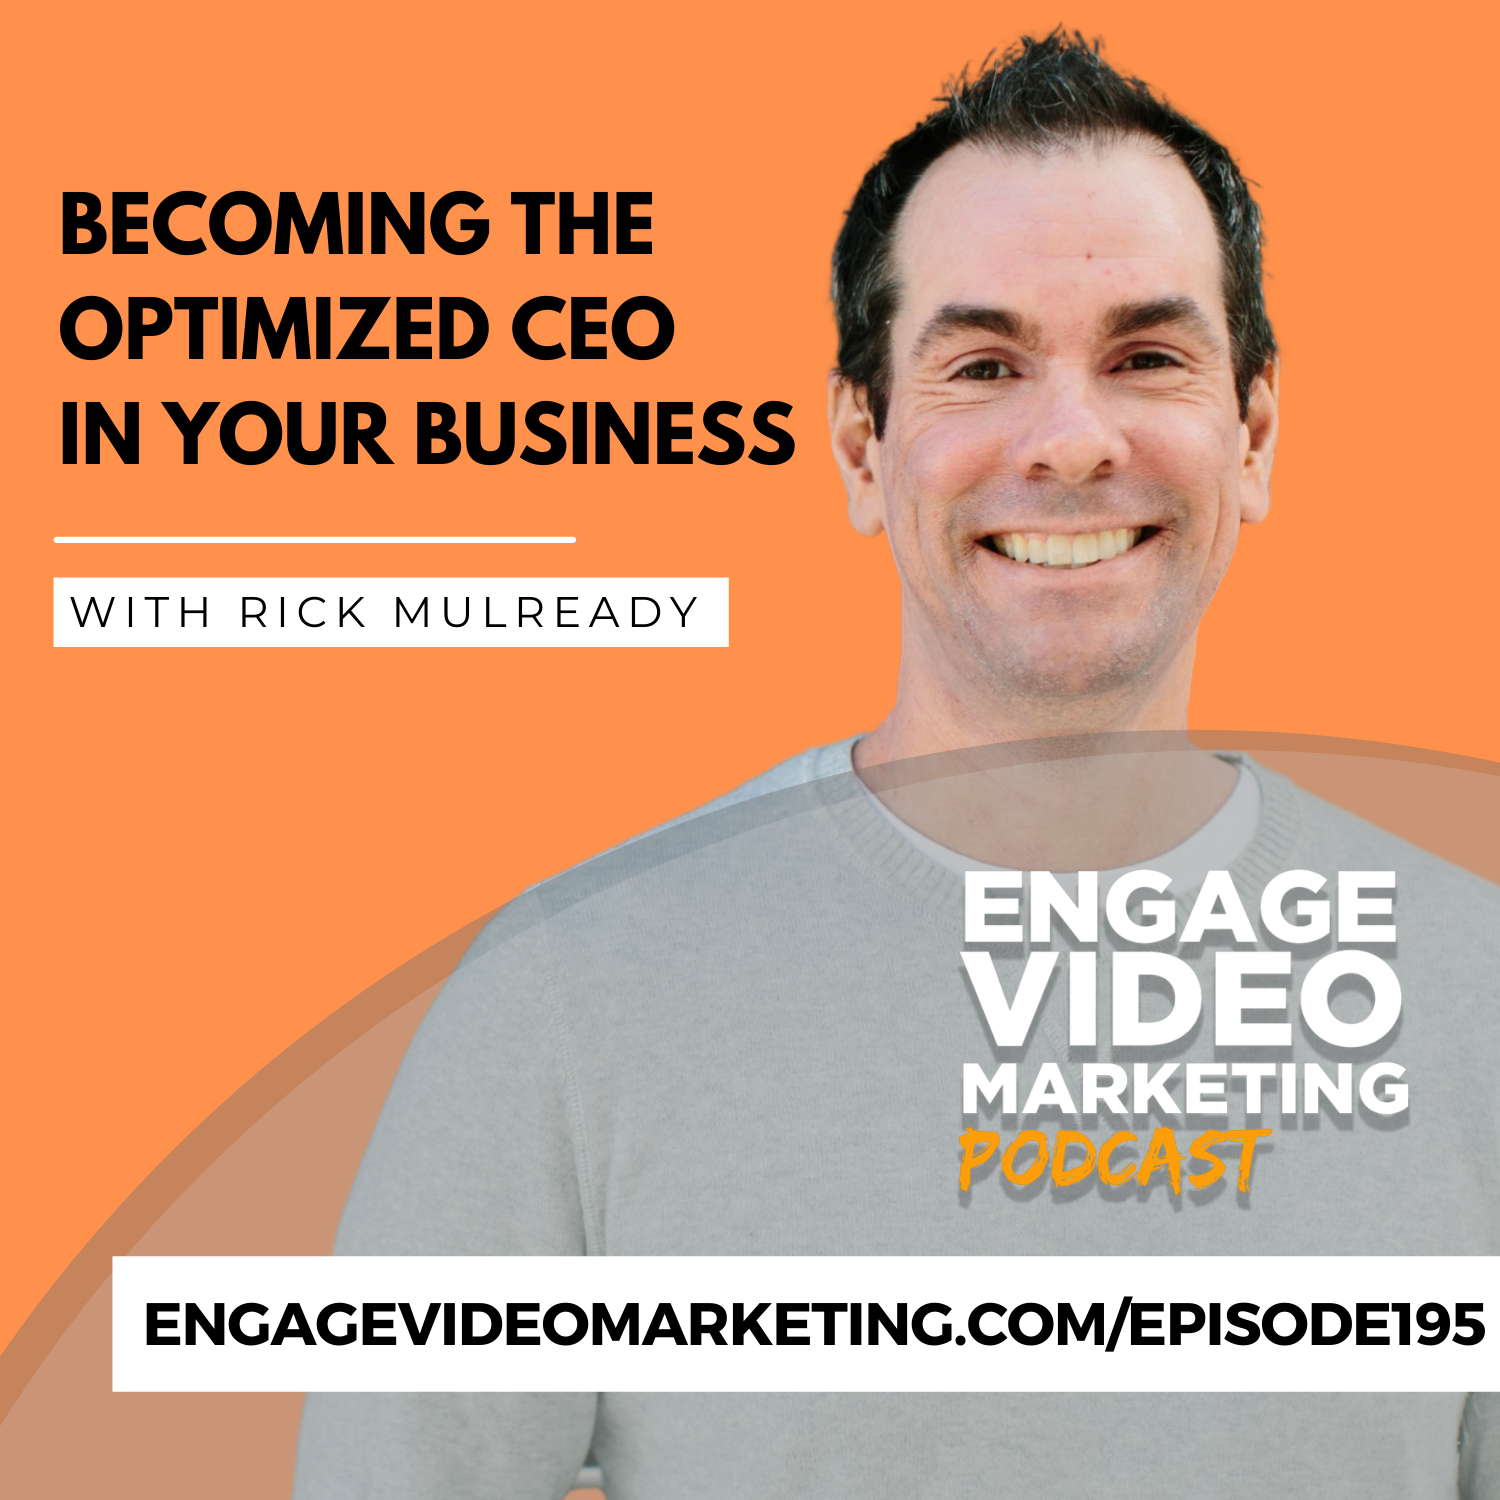 Becoming the Optimized CEO in Your Business with Rick Mulready